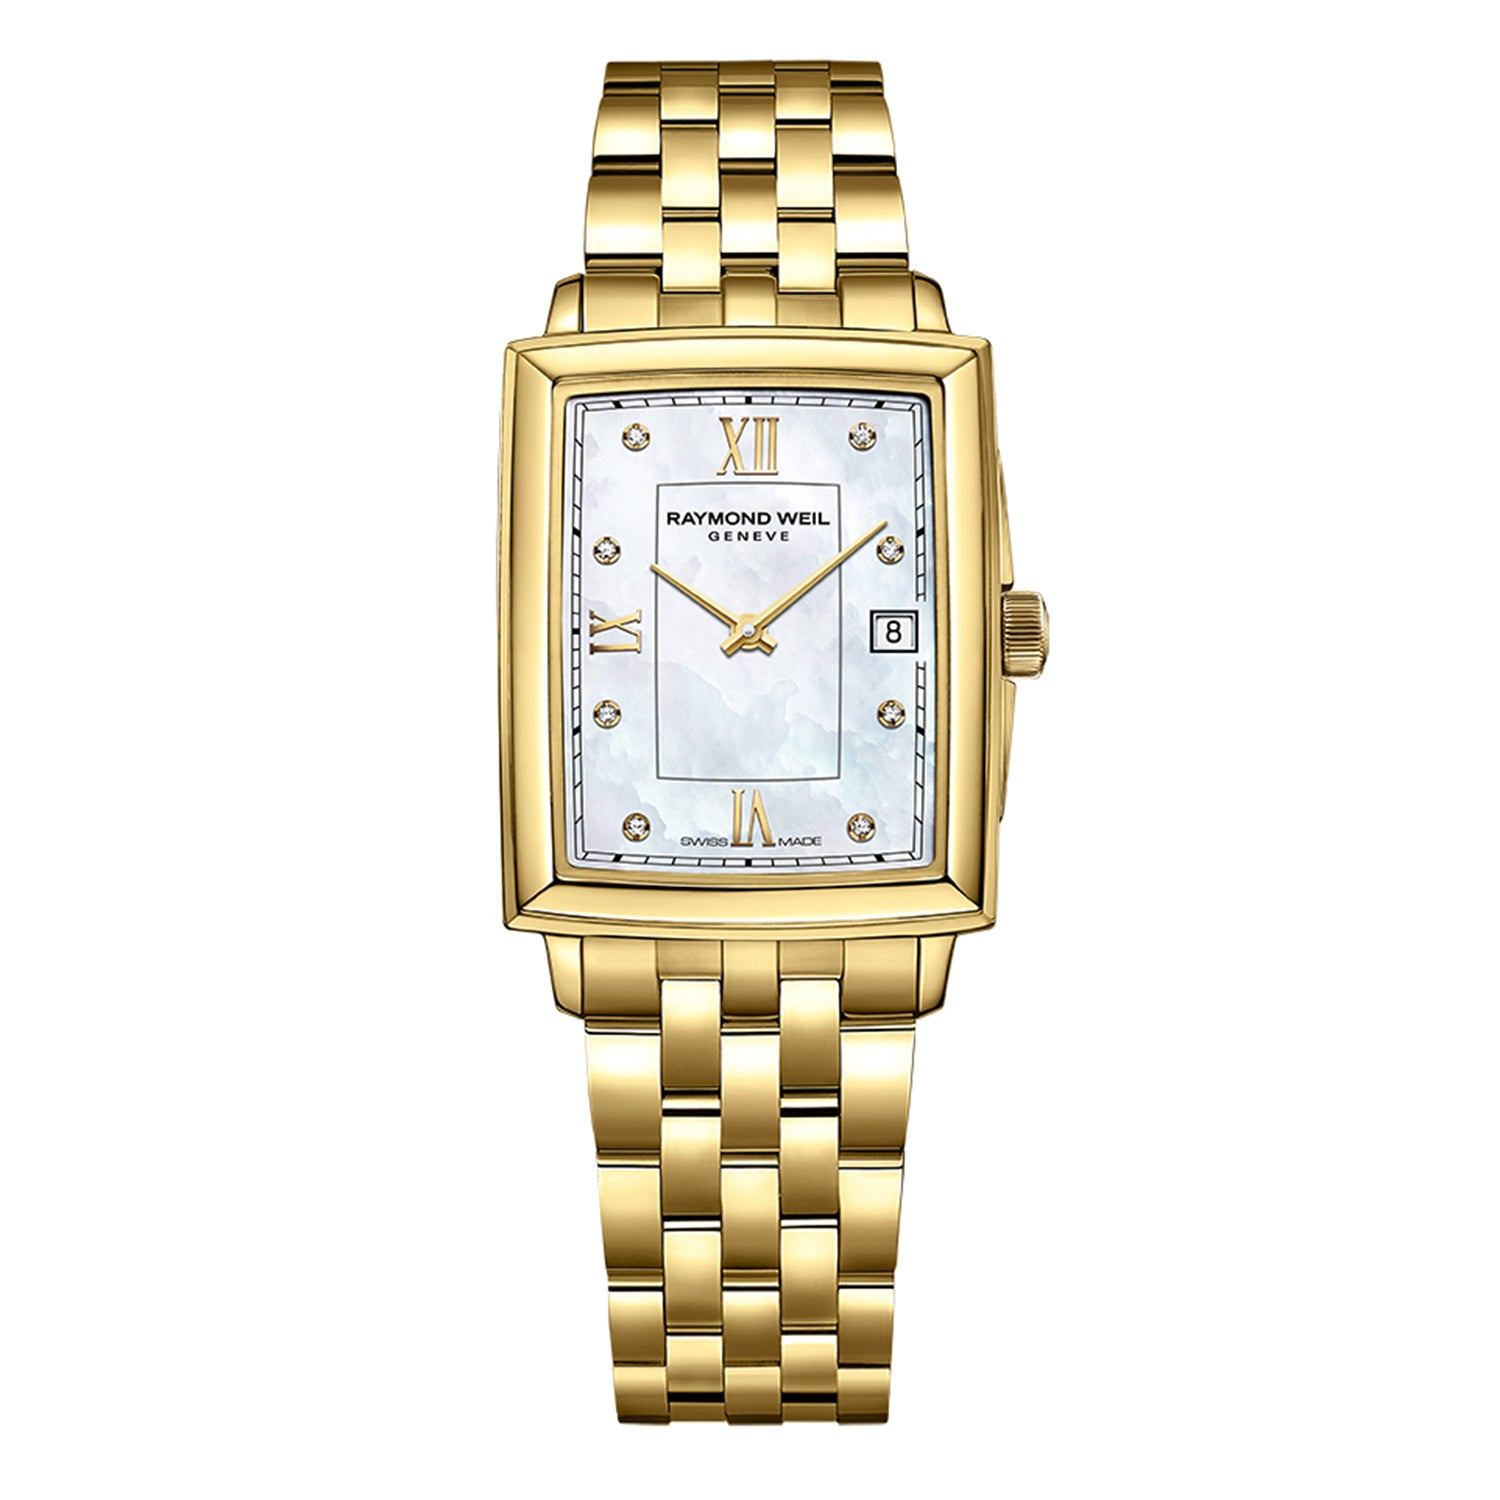 Raymond Weil Toccata Ladies Gold Diamond Quartz Watch, 23.4 x 34.6 mm, Mother-of-pearl dial, diamonds & roman numeral indexes, 5925-P-00995